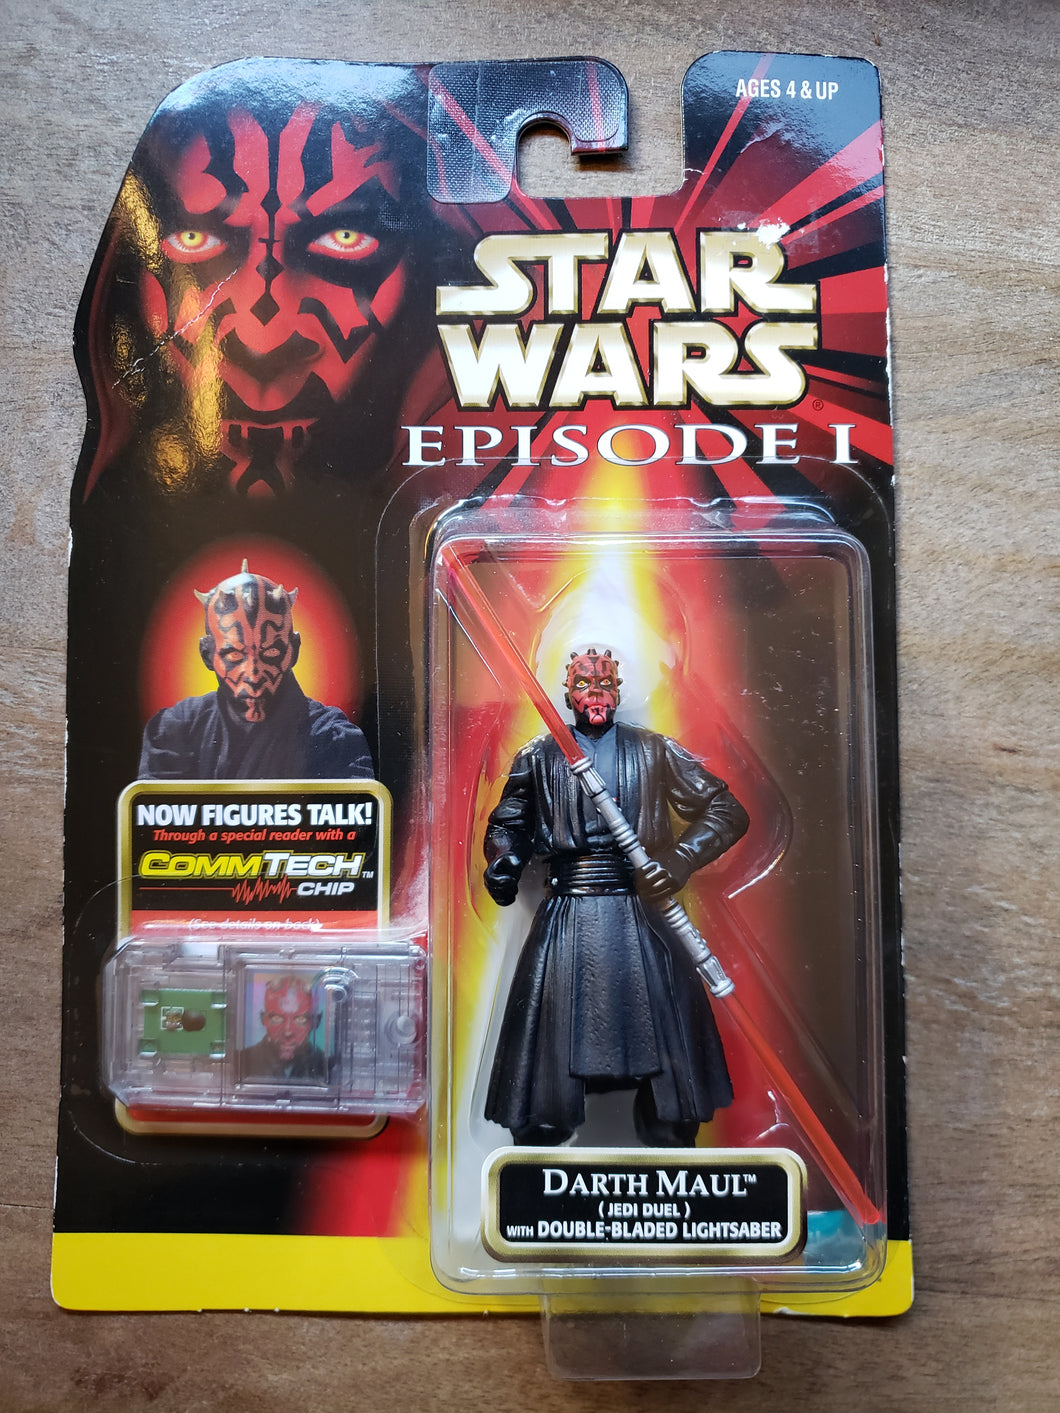 1998 Star Wars Episode I - Darth Maul with Double-Bladed Lightsaber